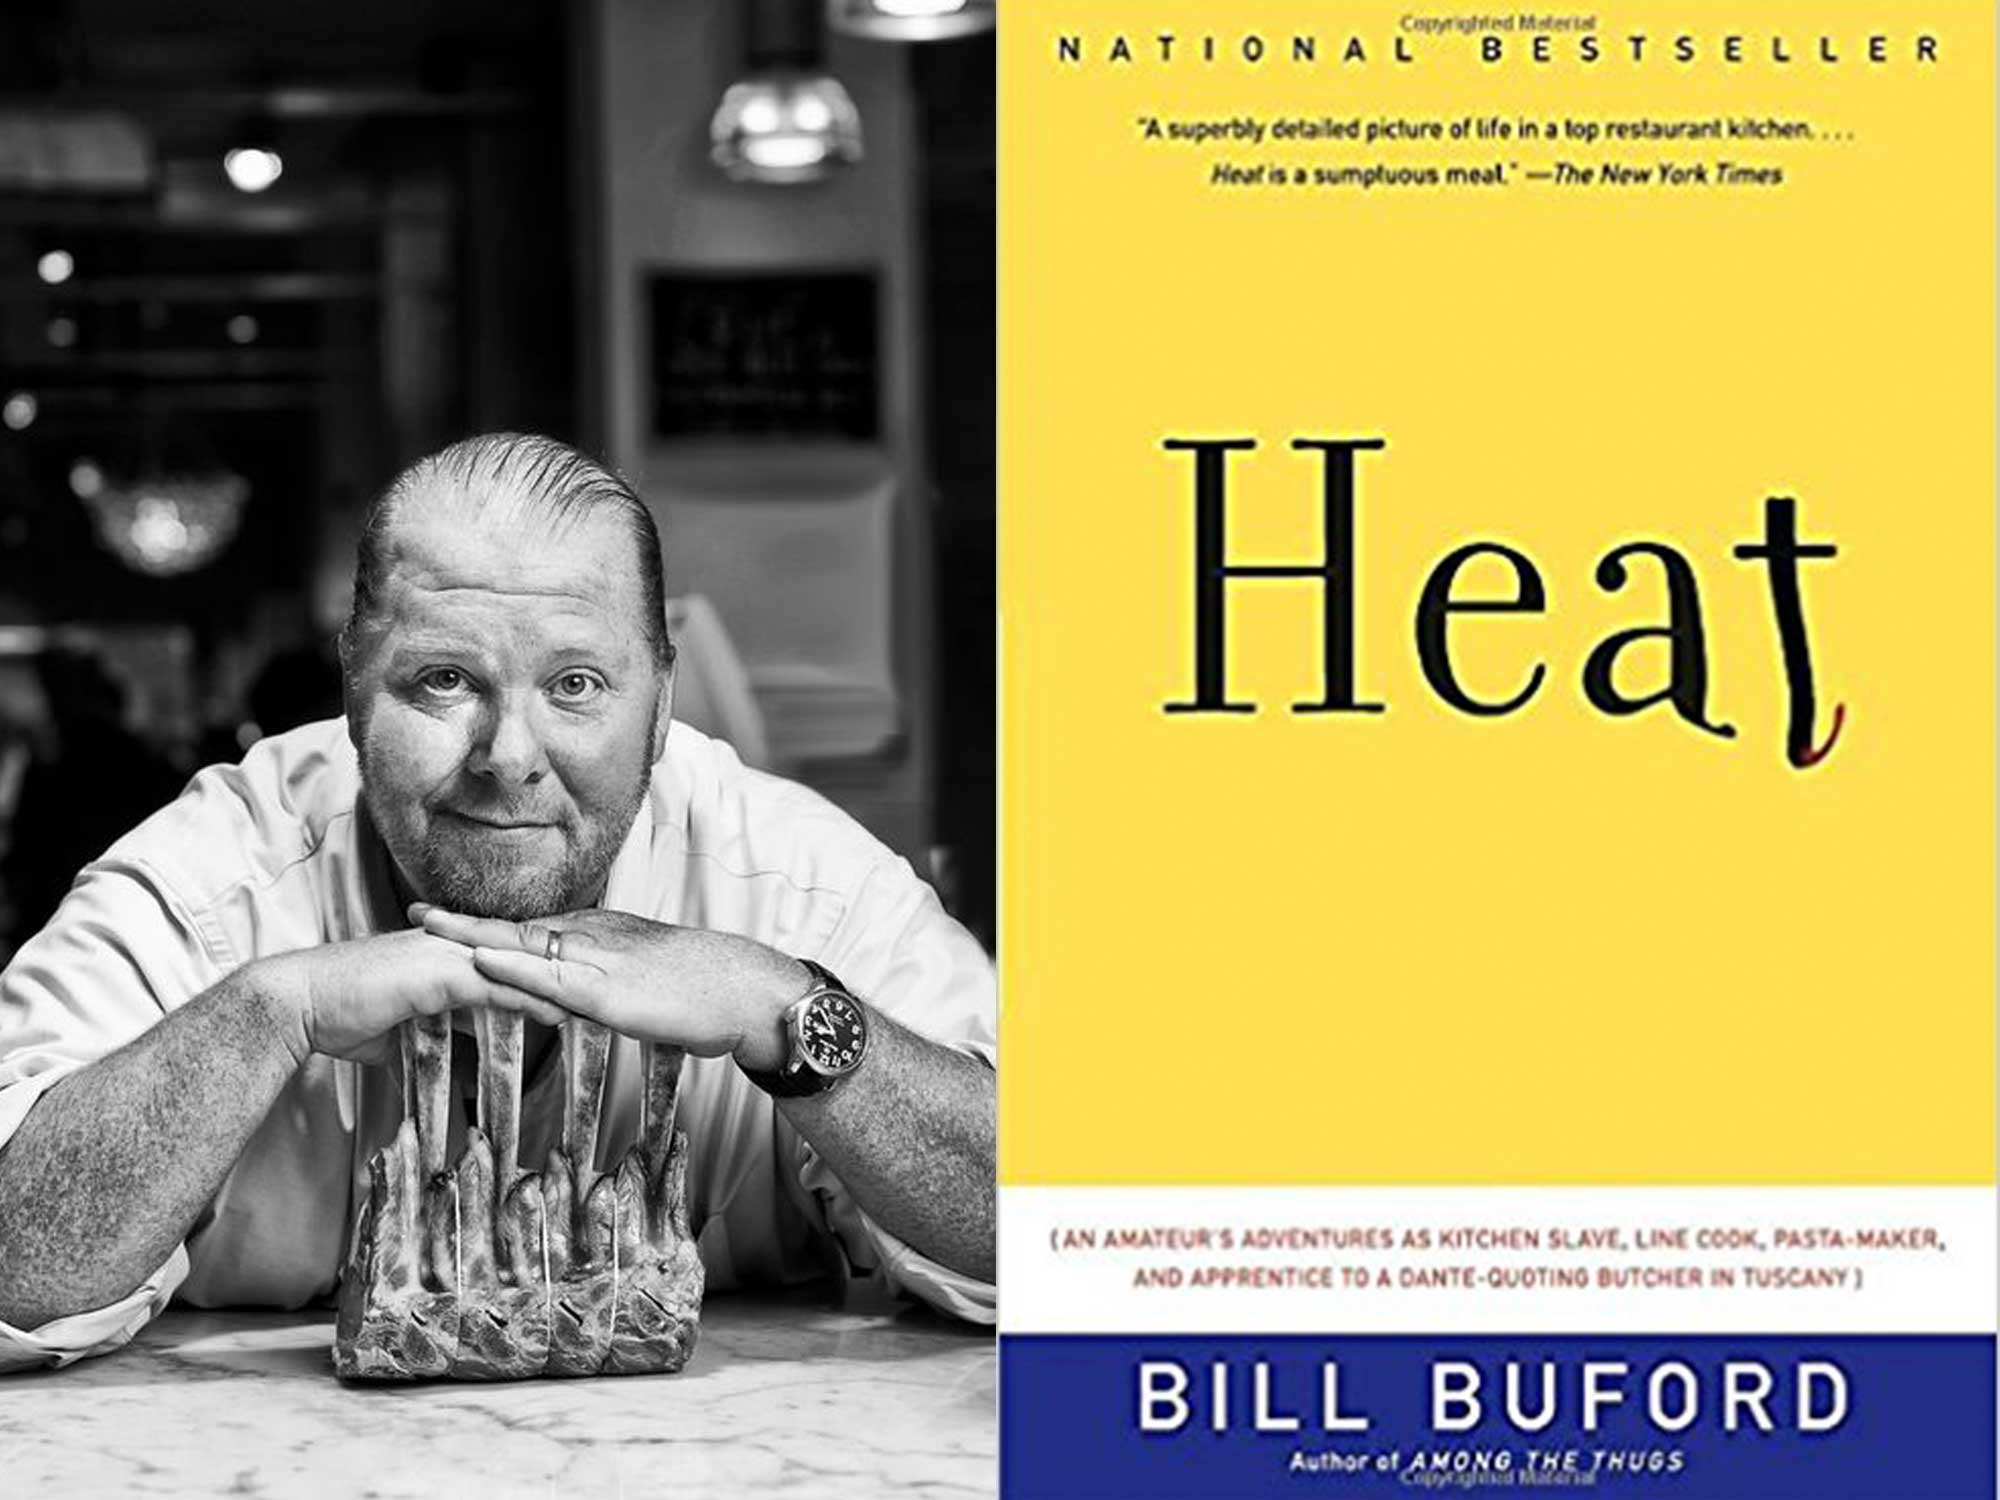 Into the Archives: Revisiting the Culinary Tell-All Reported from Mario Batali's Kitchens One Decade Ago